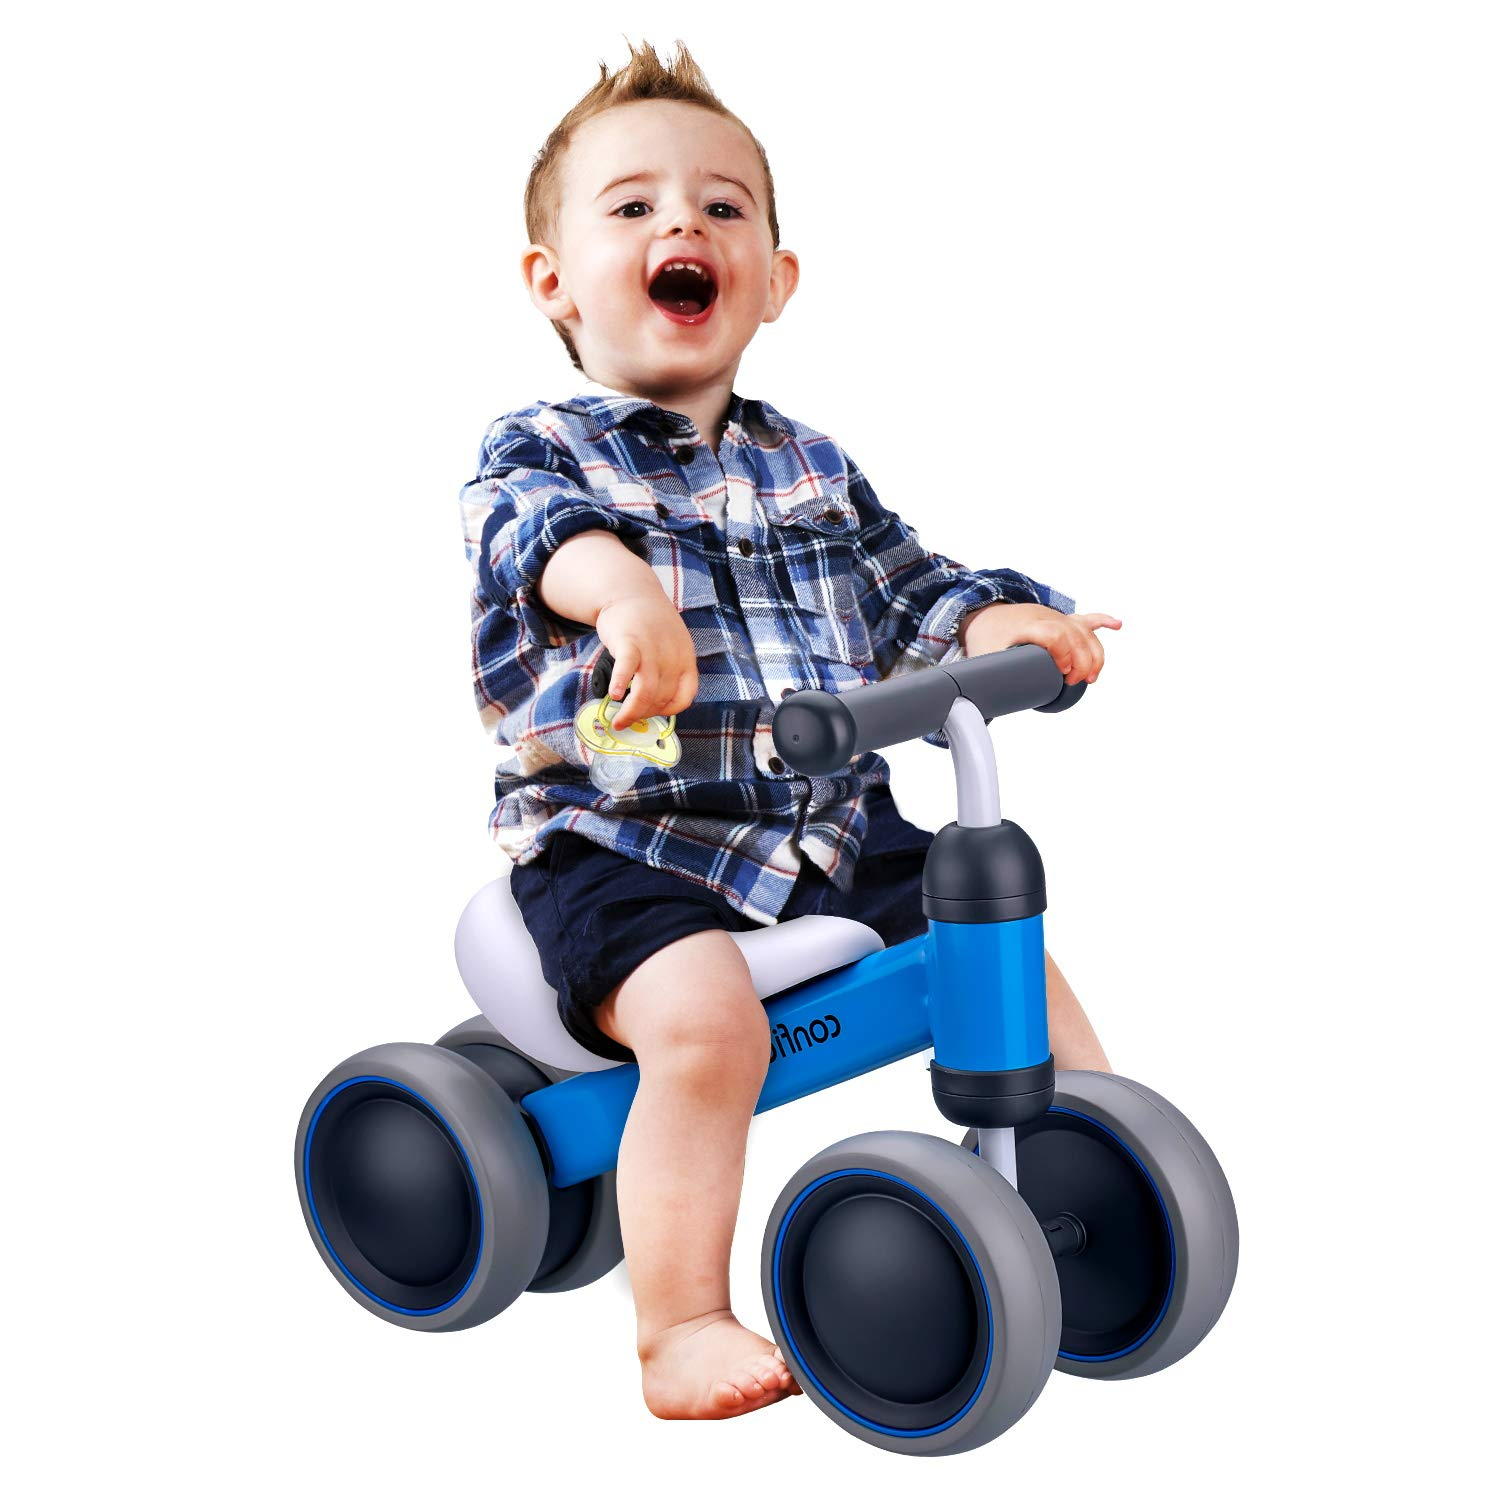 BonBonBrothers Baby Balance Bike, Sturdy Balance Bike Bicycle 6-24 Months, Cute Balance Bike for Toddler with 4 Wheels, Ideal Gift Choice for First Birthday - Blue